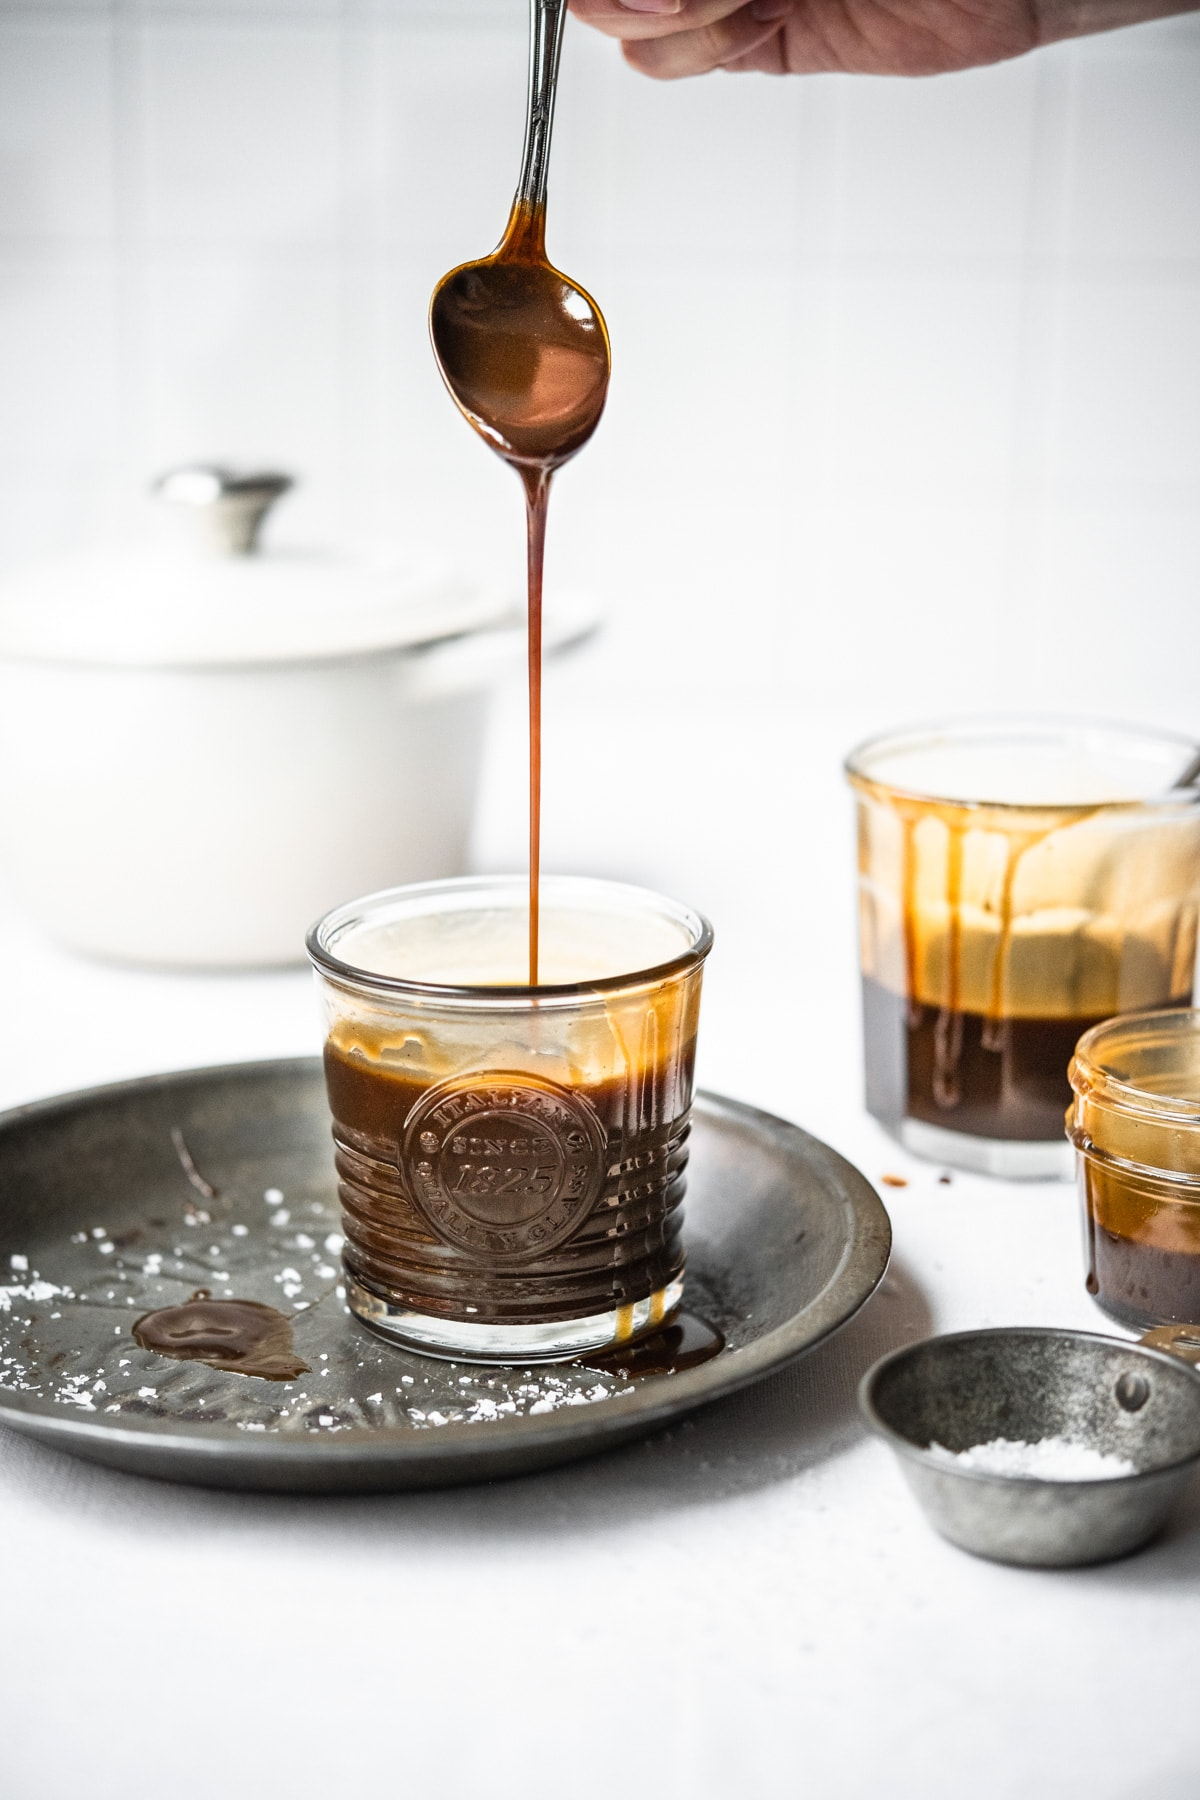 side view of person drizzling caramel sauce into a jar.